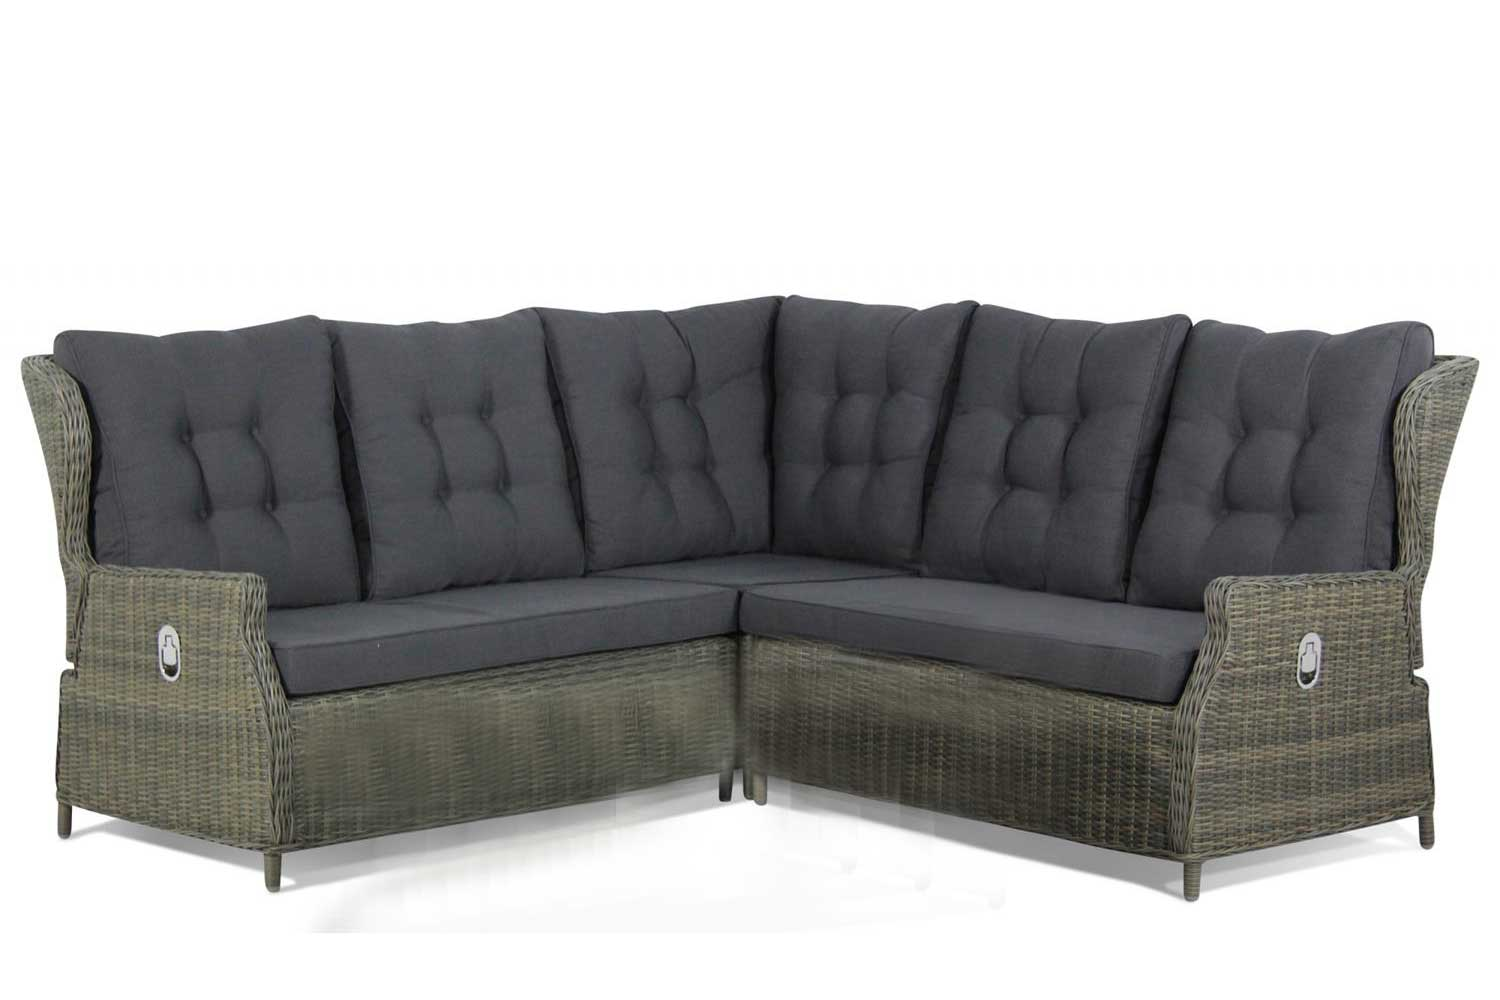 Garden Collections Royalty loungeset 3-delig